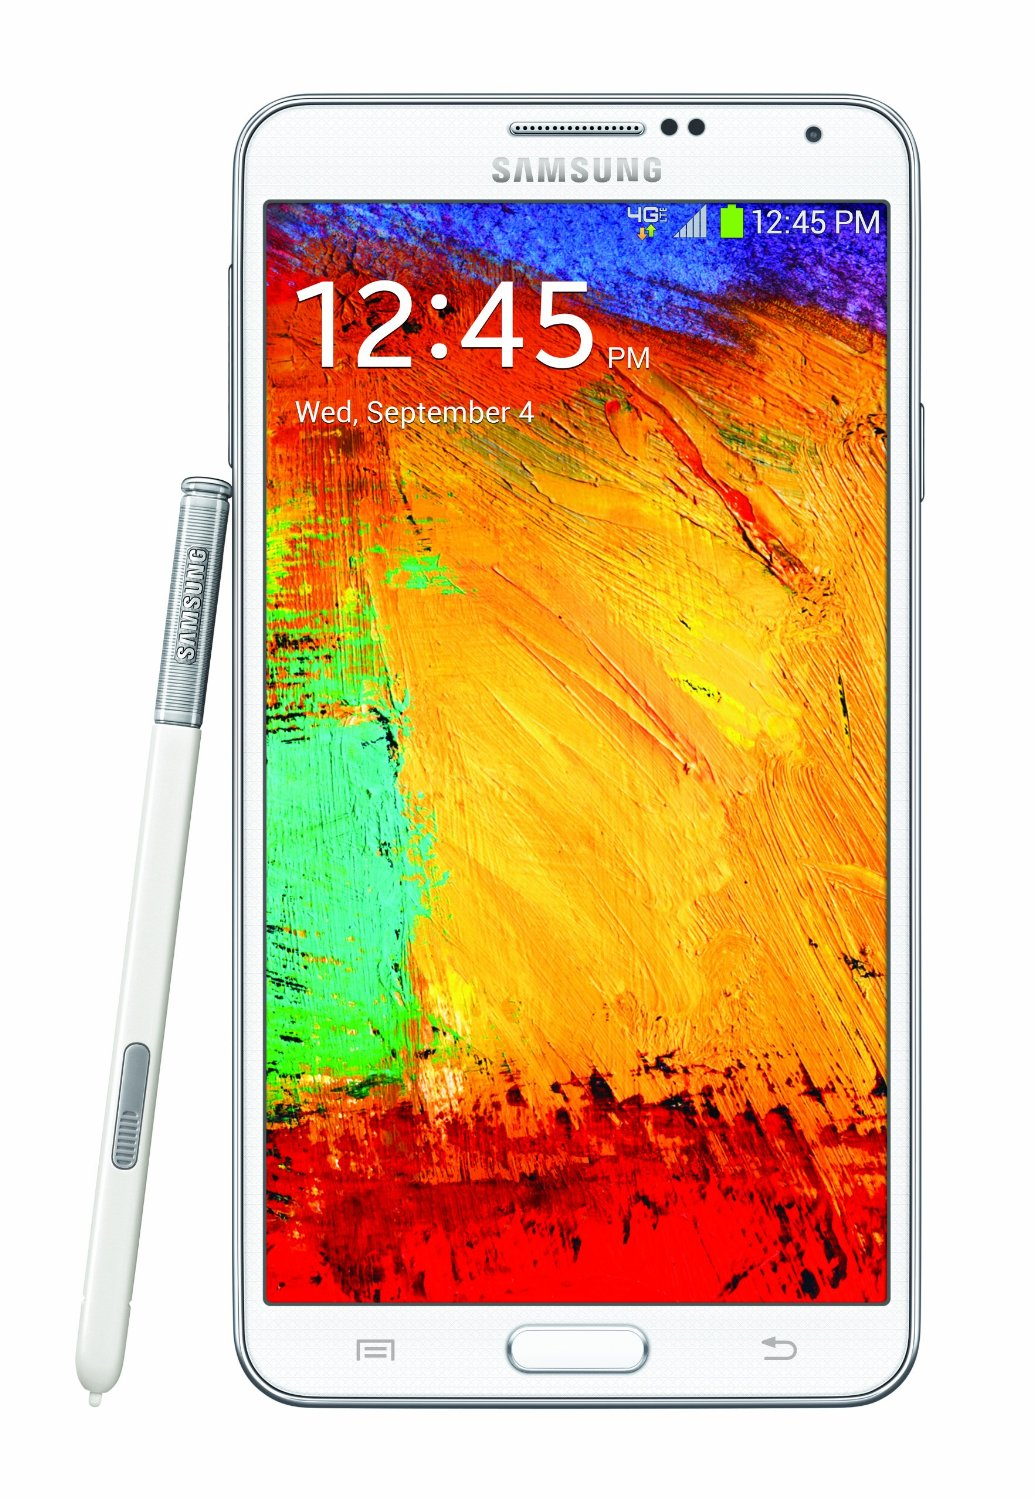 ff1b79dd75e Samsung Galaxy Note 3 Smartphone 32GB Android 4.3 White (SMN900VZWE) ...